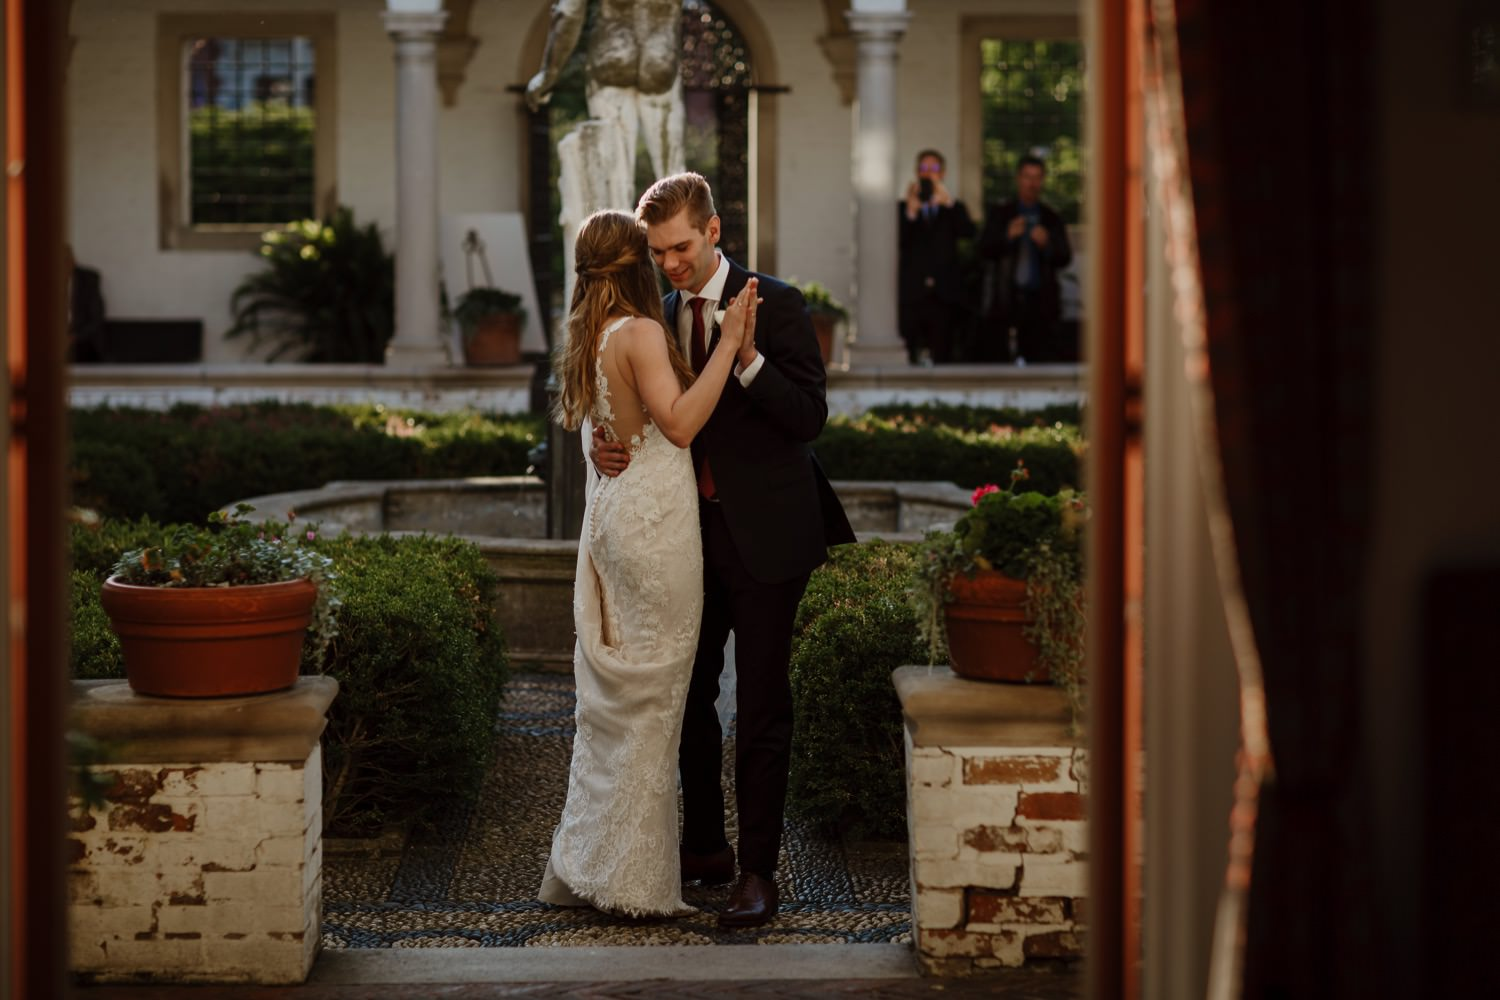 First dance between bride and groom at Villa Terrace in Milwaukee